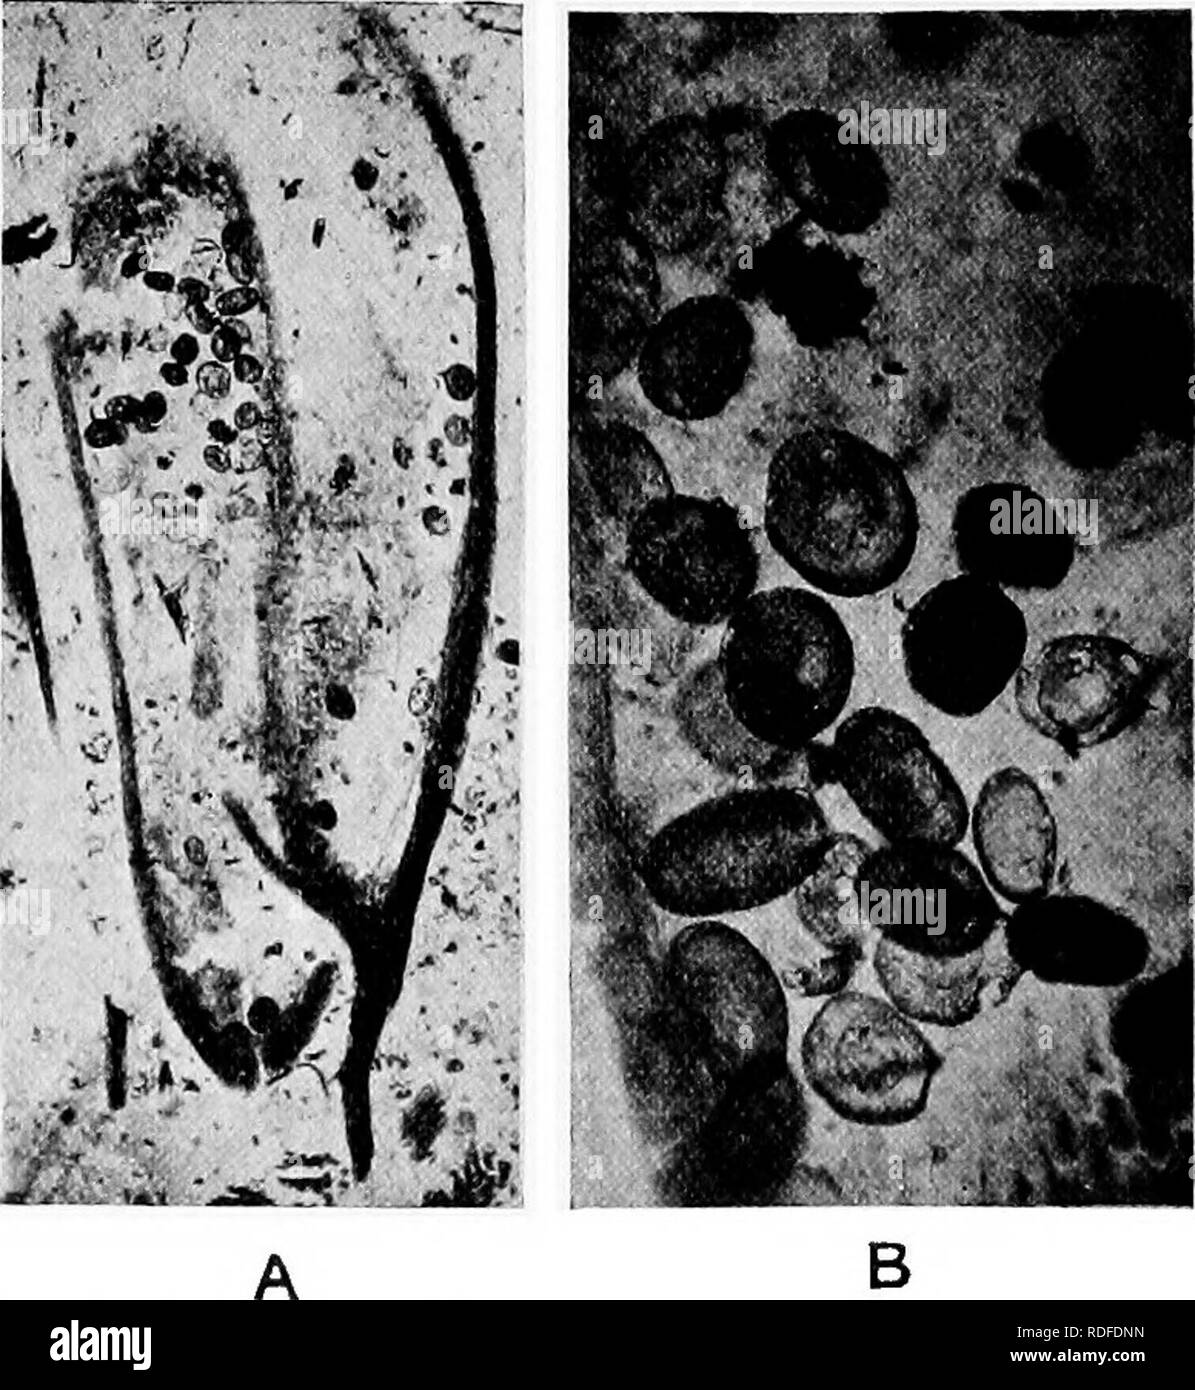 . Fossil plants : for students of botany and geology . Paleobotany. 270 COBDAITEAE [CH. sperinatozoids were developed. The microspores shown in fig. 482, B, have a maximum length of 0-1 mm.: Renault describes some as 0-9 mm. long while others are much smaller. Fig. 481, F, is a transverse section of a staminate inflorescence showing near the centre five groups of microsporangia, each sporangium having the form of a curved incomplete dark band indicating that de- hiscence has occurred.. Fig. 482. Gordaianthus. Microsporangia, A, and Microspores, B. (University College CoUeotion, London.) Mesoxy - Stock Image